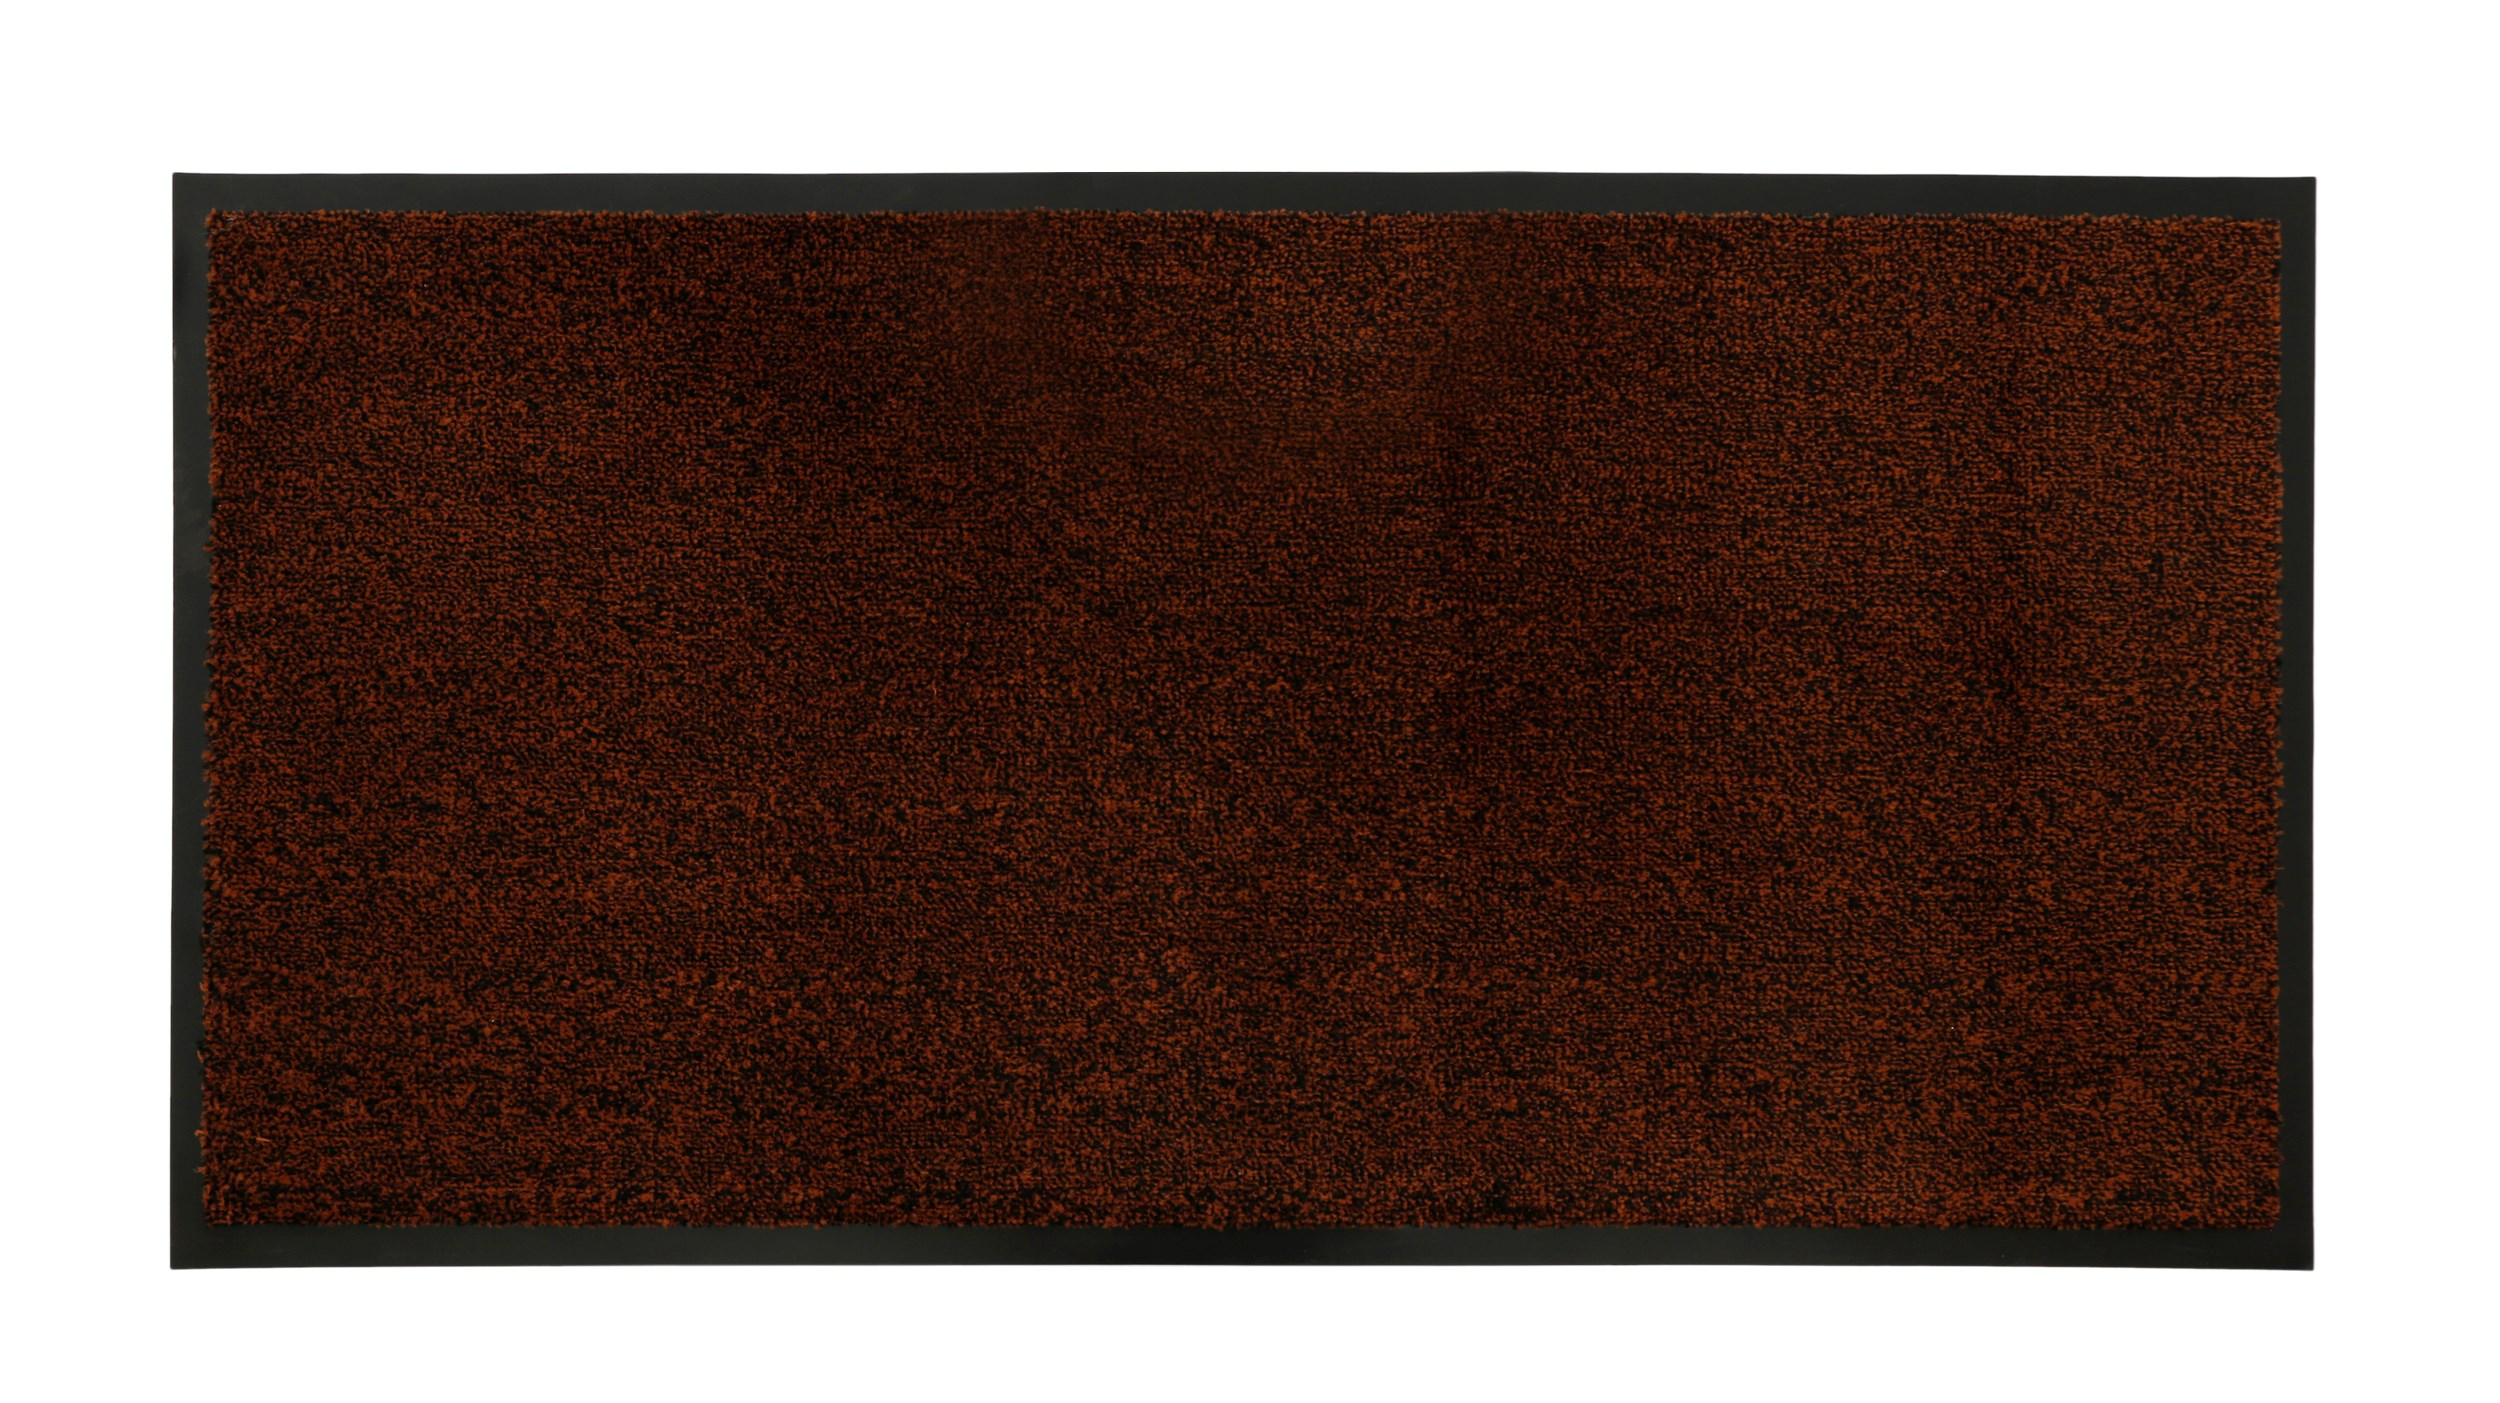 Dosco  Dust Control Ultimate Mat - 90 x 120cm